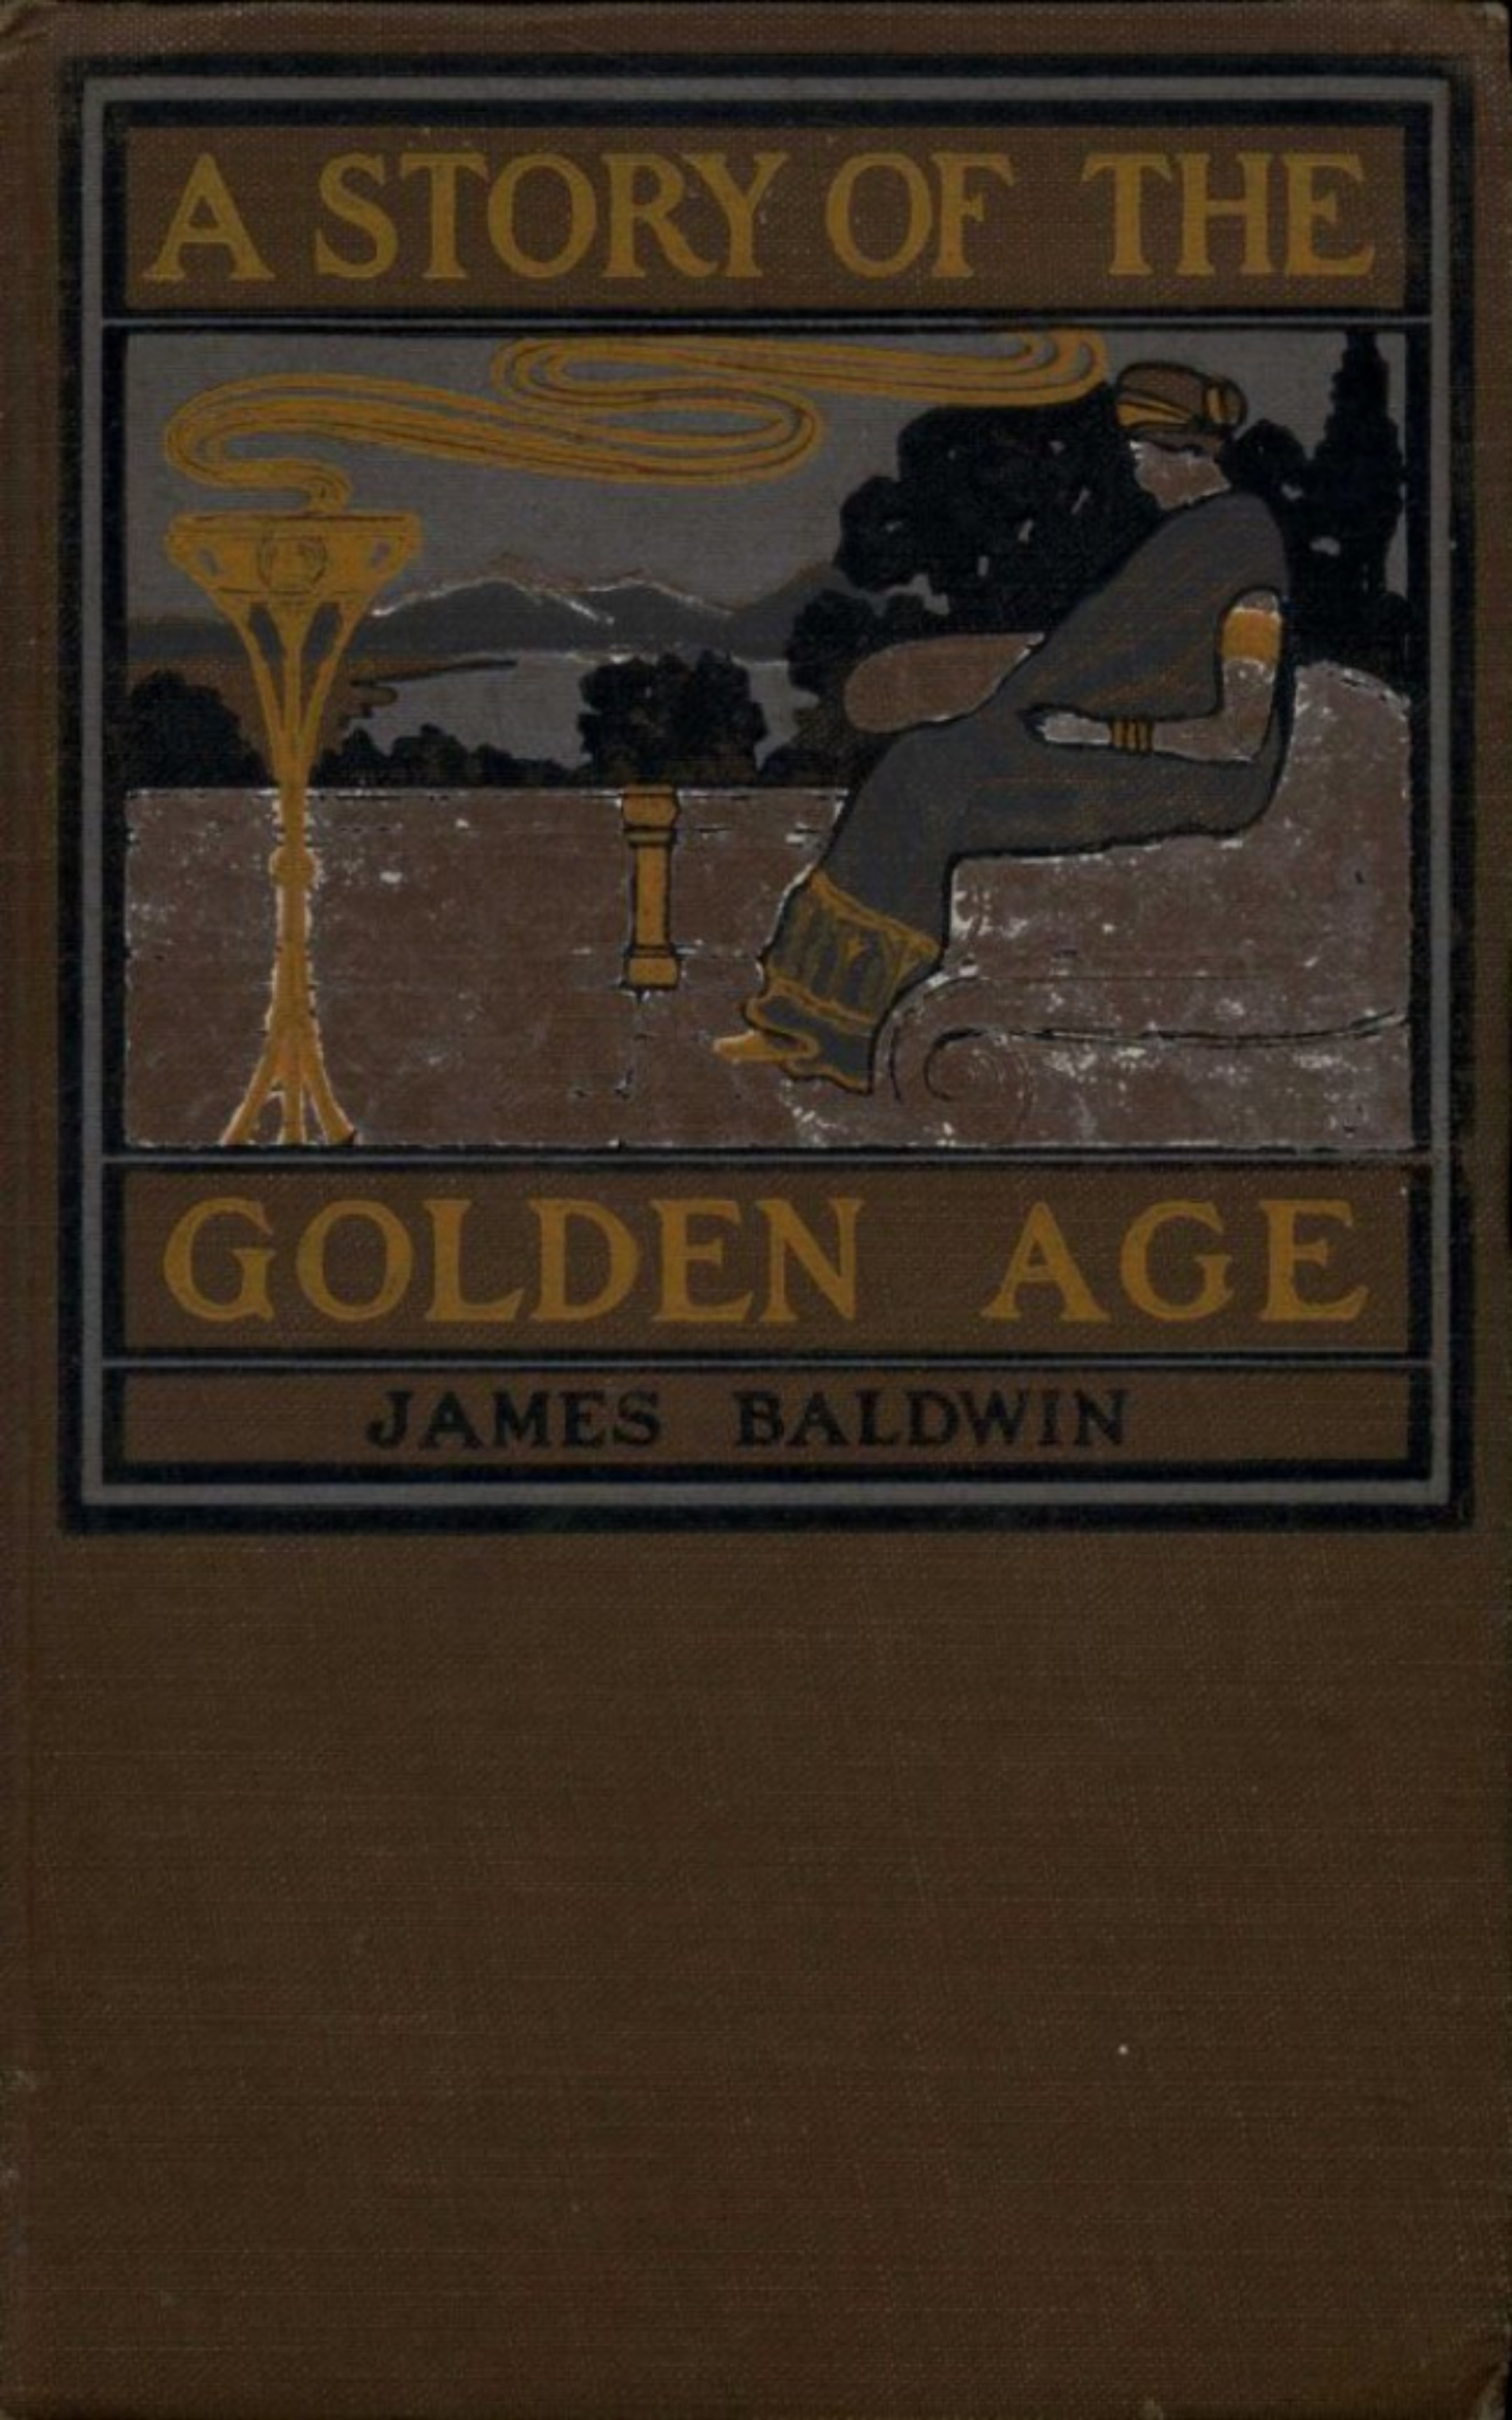 James Baldwin A Story of the Golden Age baldwin james school reading by grades fifth year